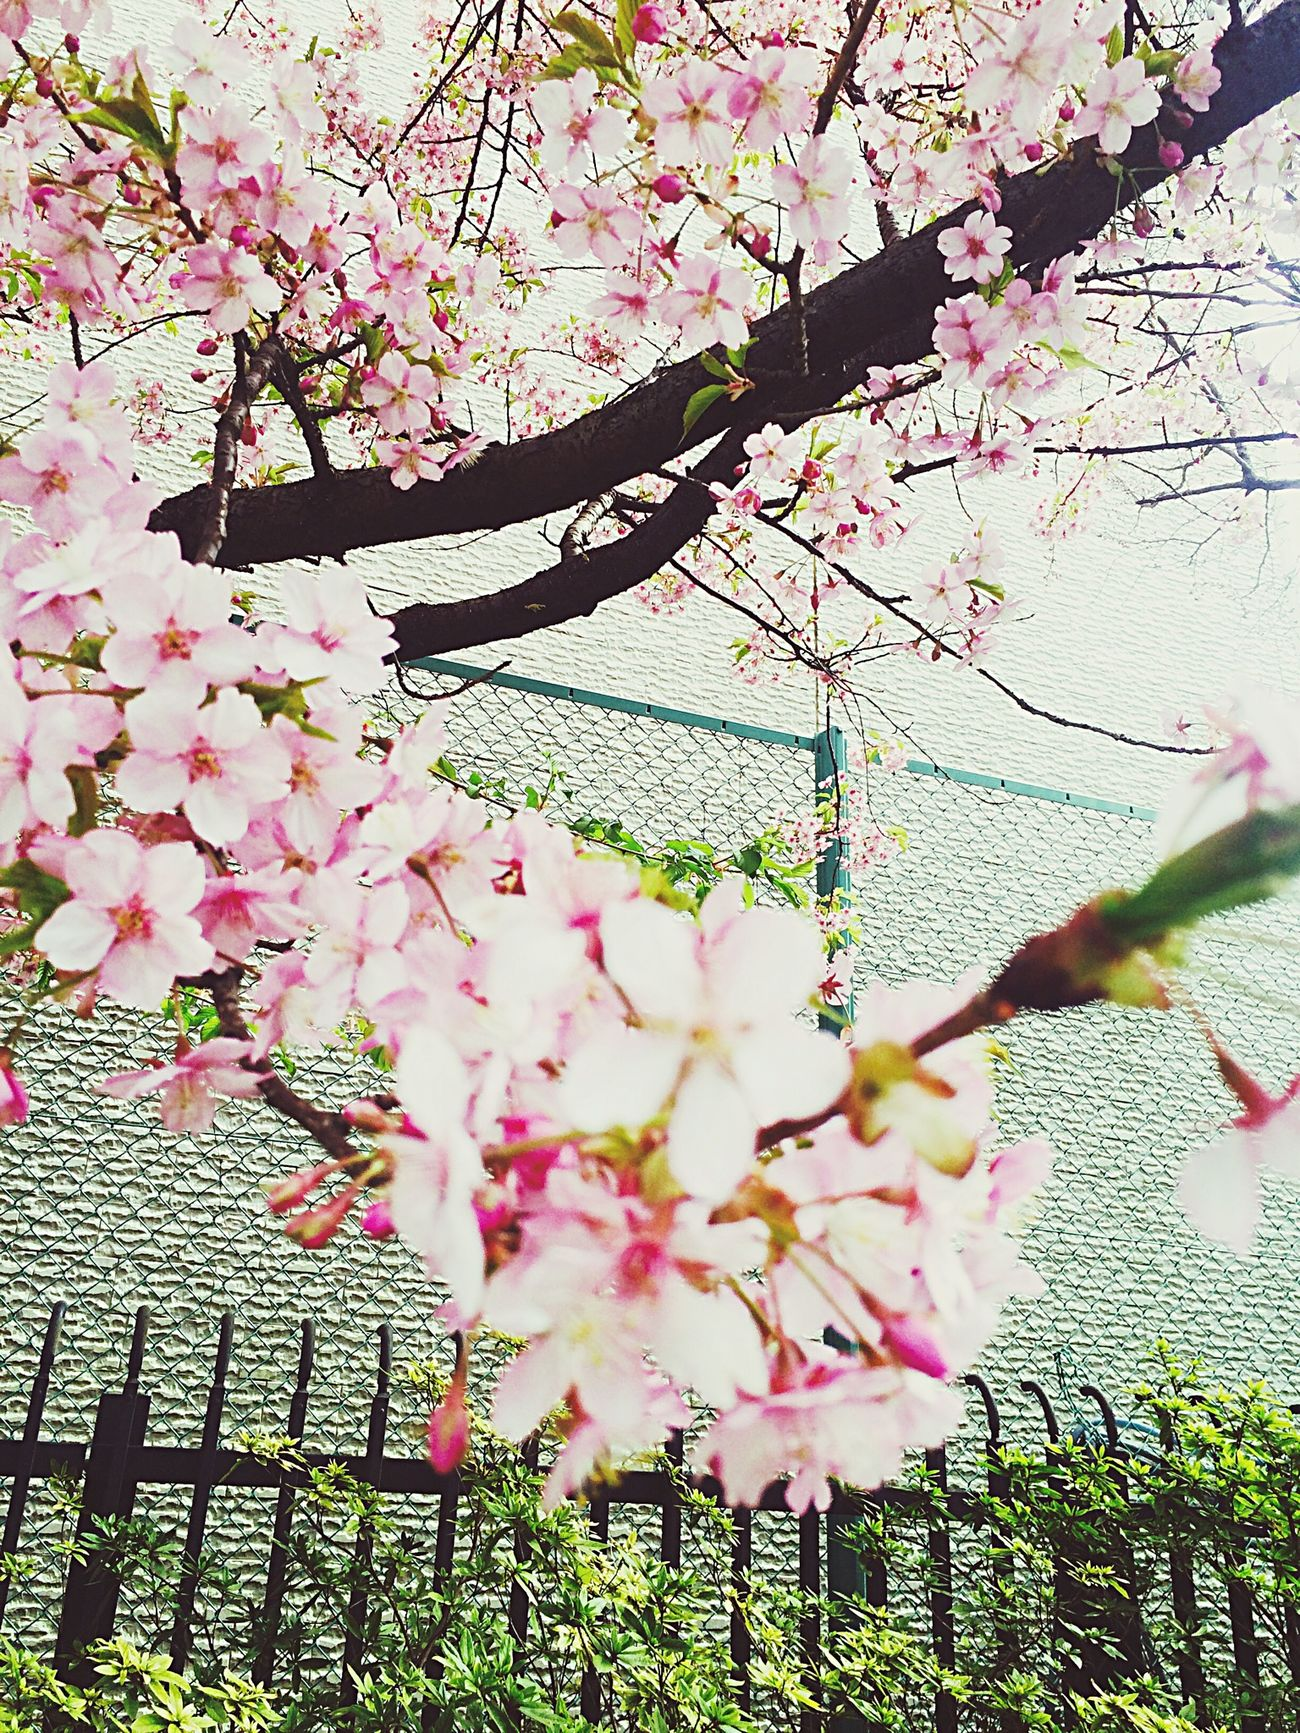 Flawer🌸 Cherry Blossoms Spring Setagaya